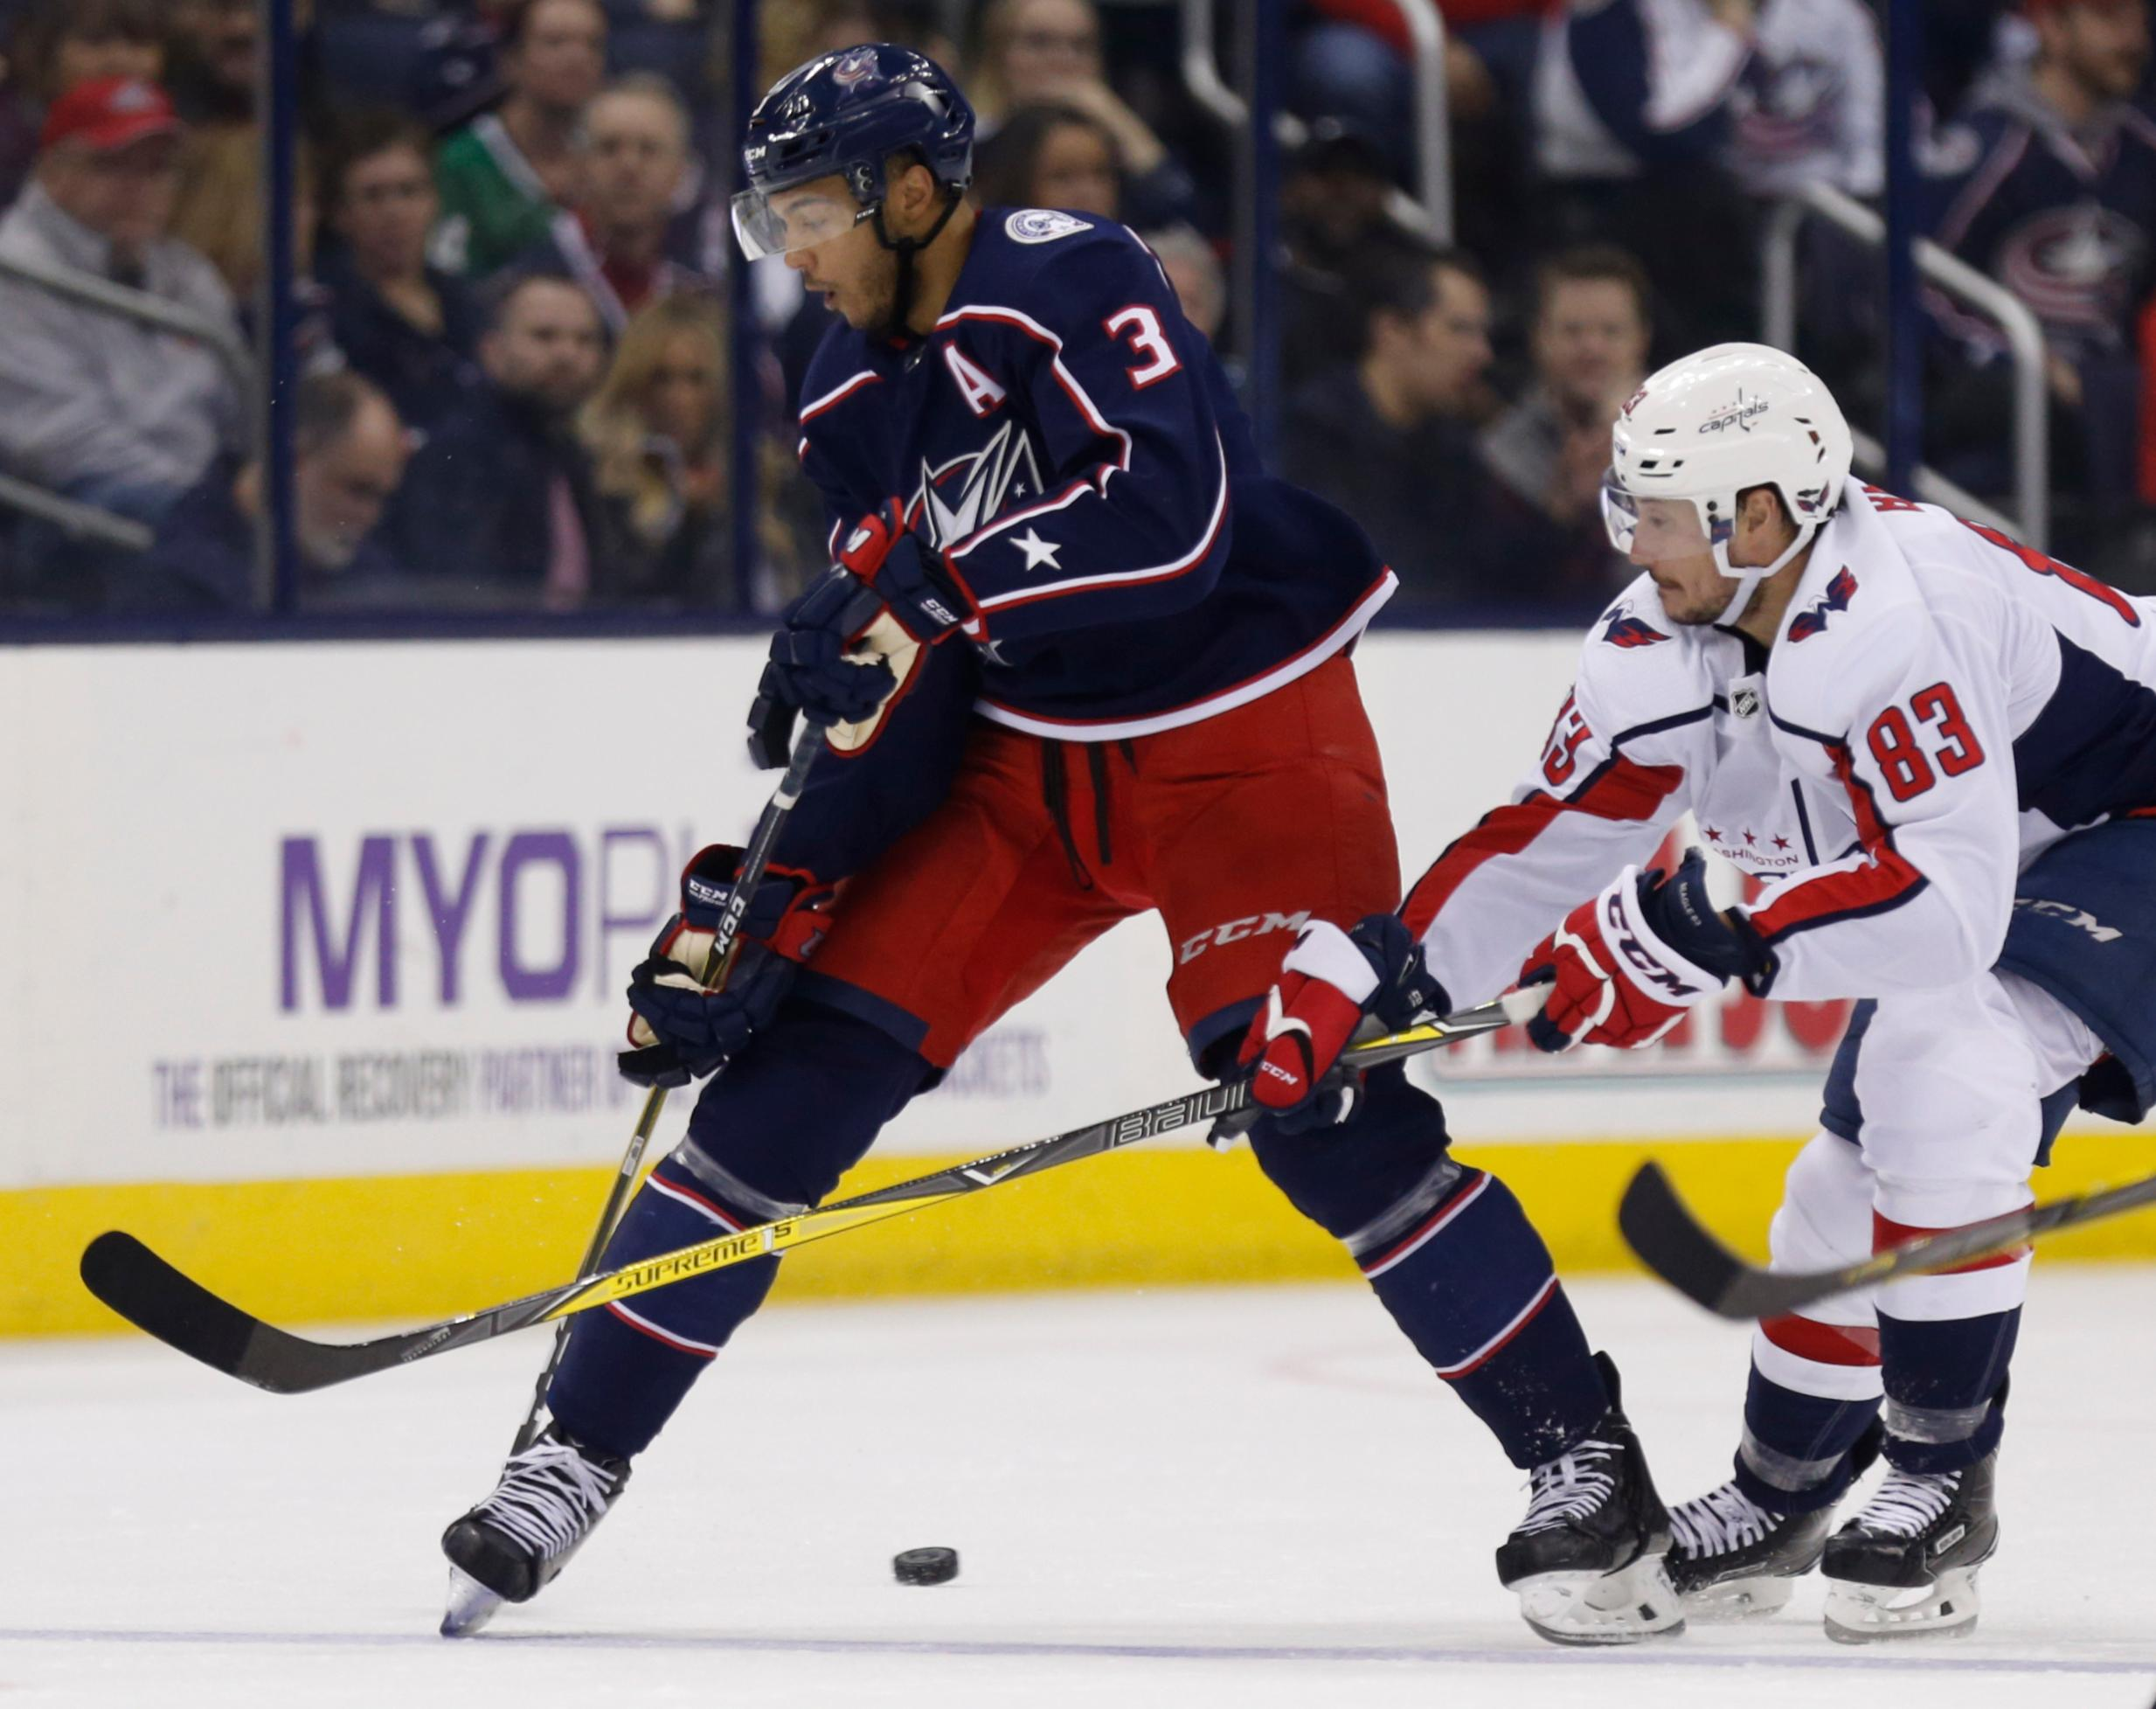 Columbus Blue Jackets defenseman Seth Jones, left, passes the puck against Washington Capitals forward Jay Beagle during the second period of an NHL hockey game in Columbus, Ohio, Monday, Feb. 26, 2018. (AP Photo/Paul Vernon)